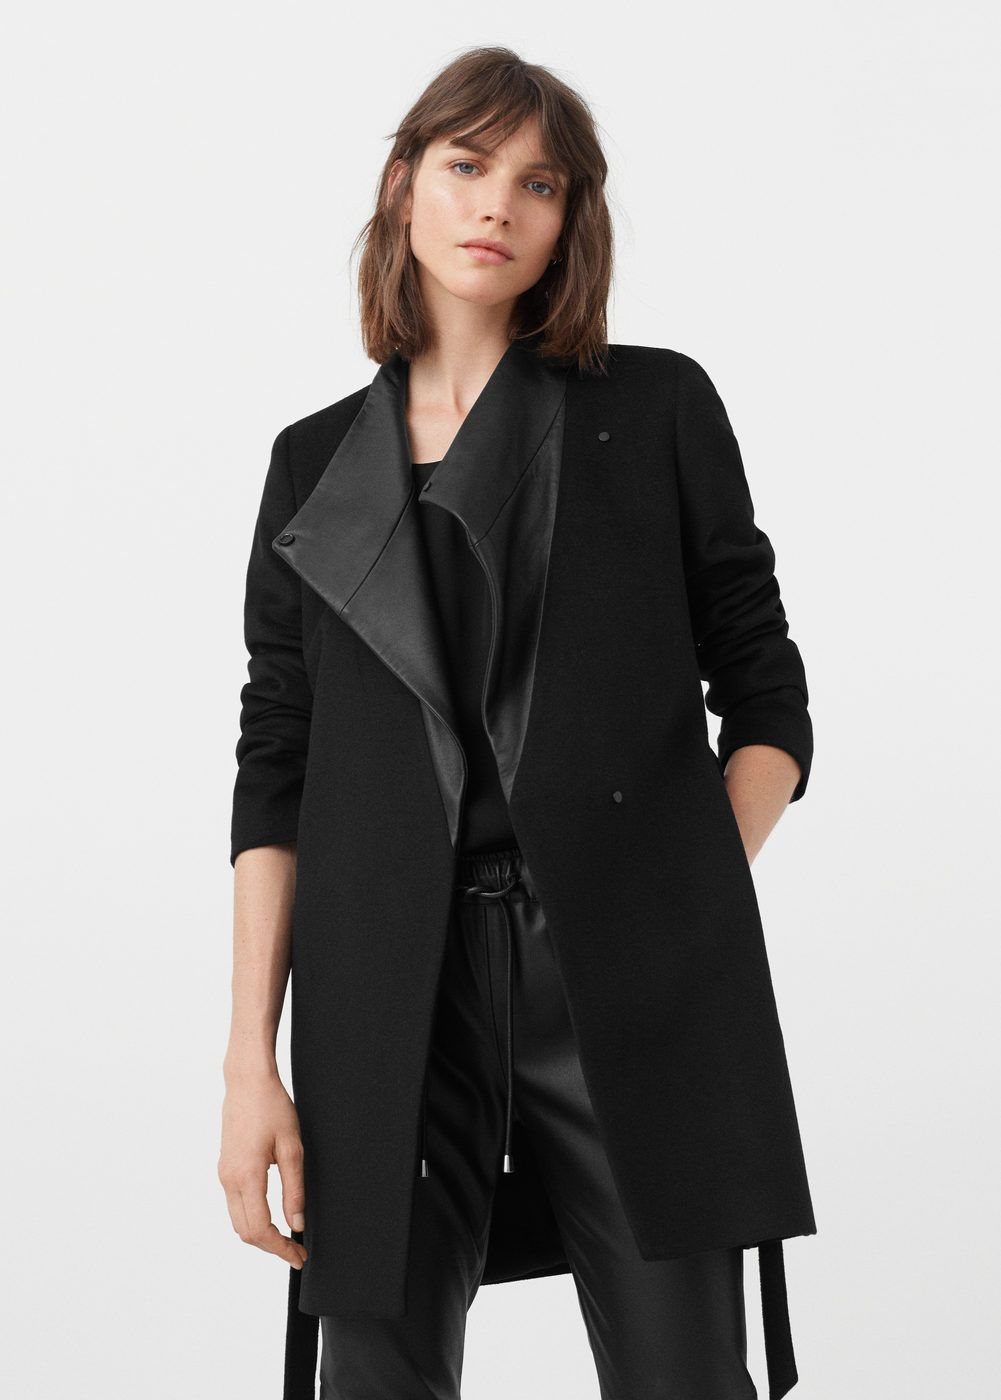 Wool leather coat | Leather, Coats and Winter